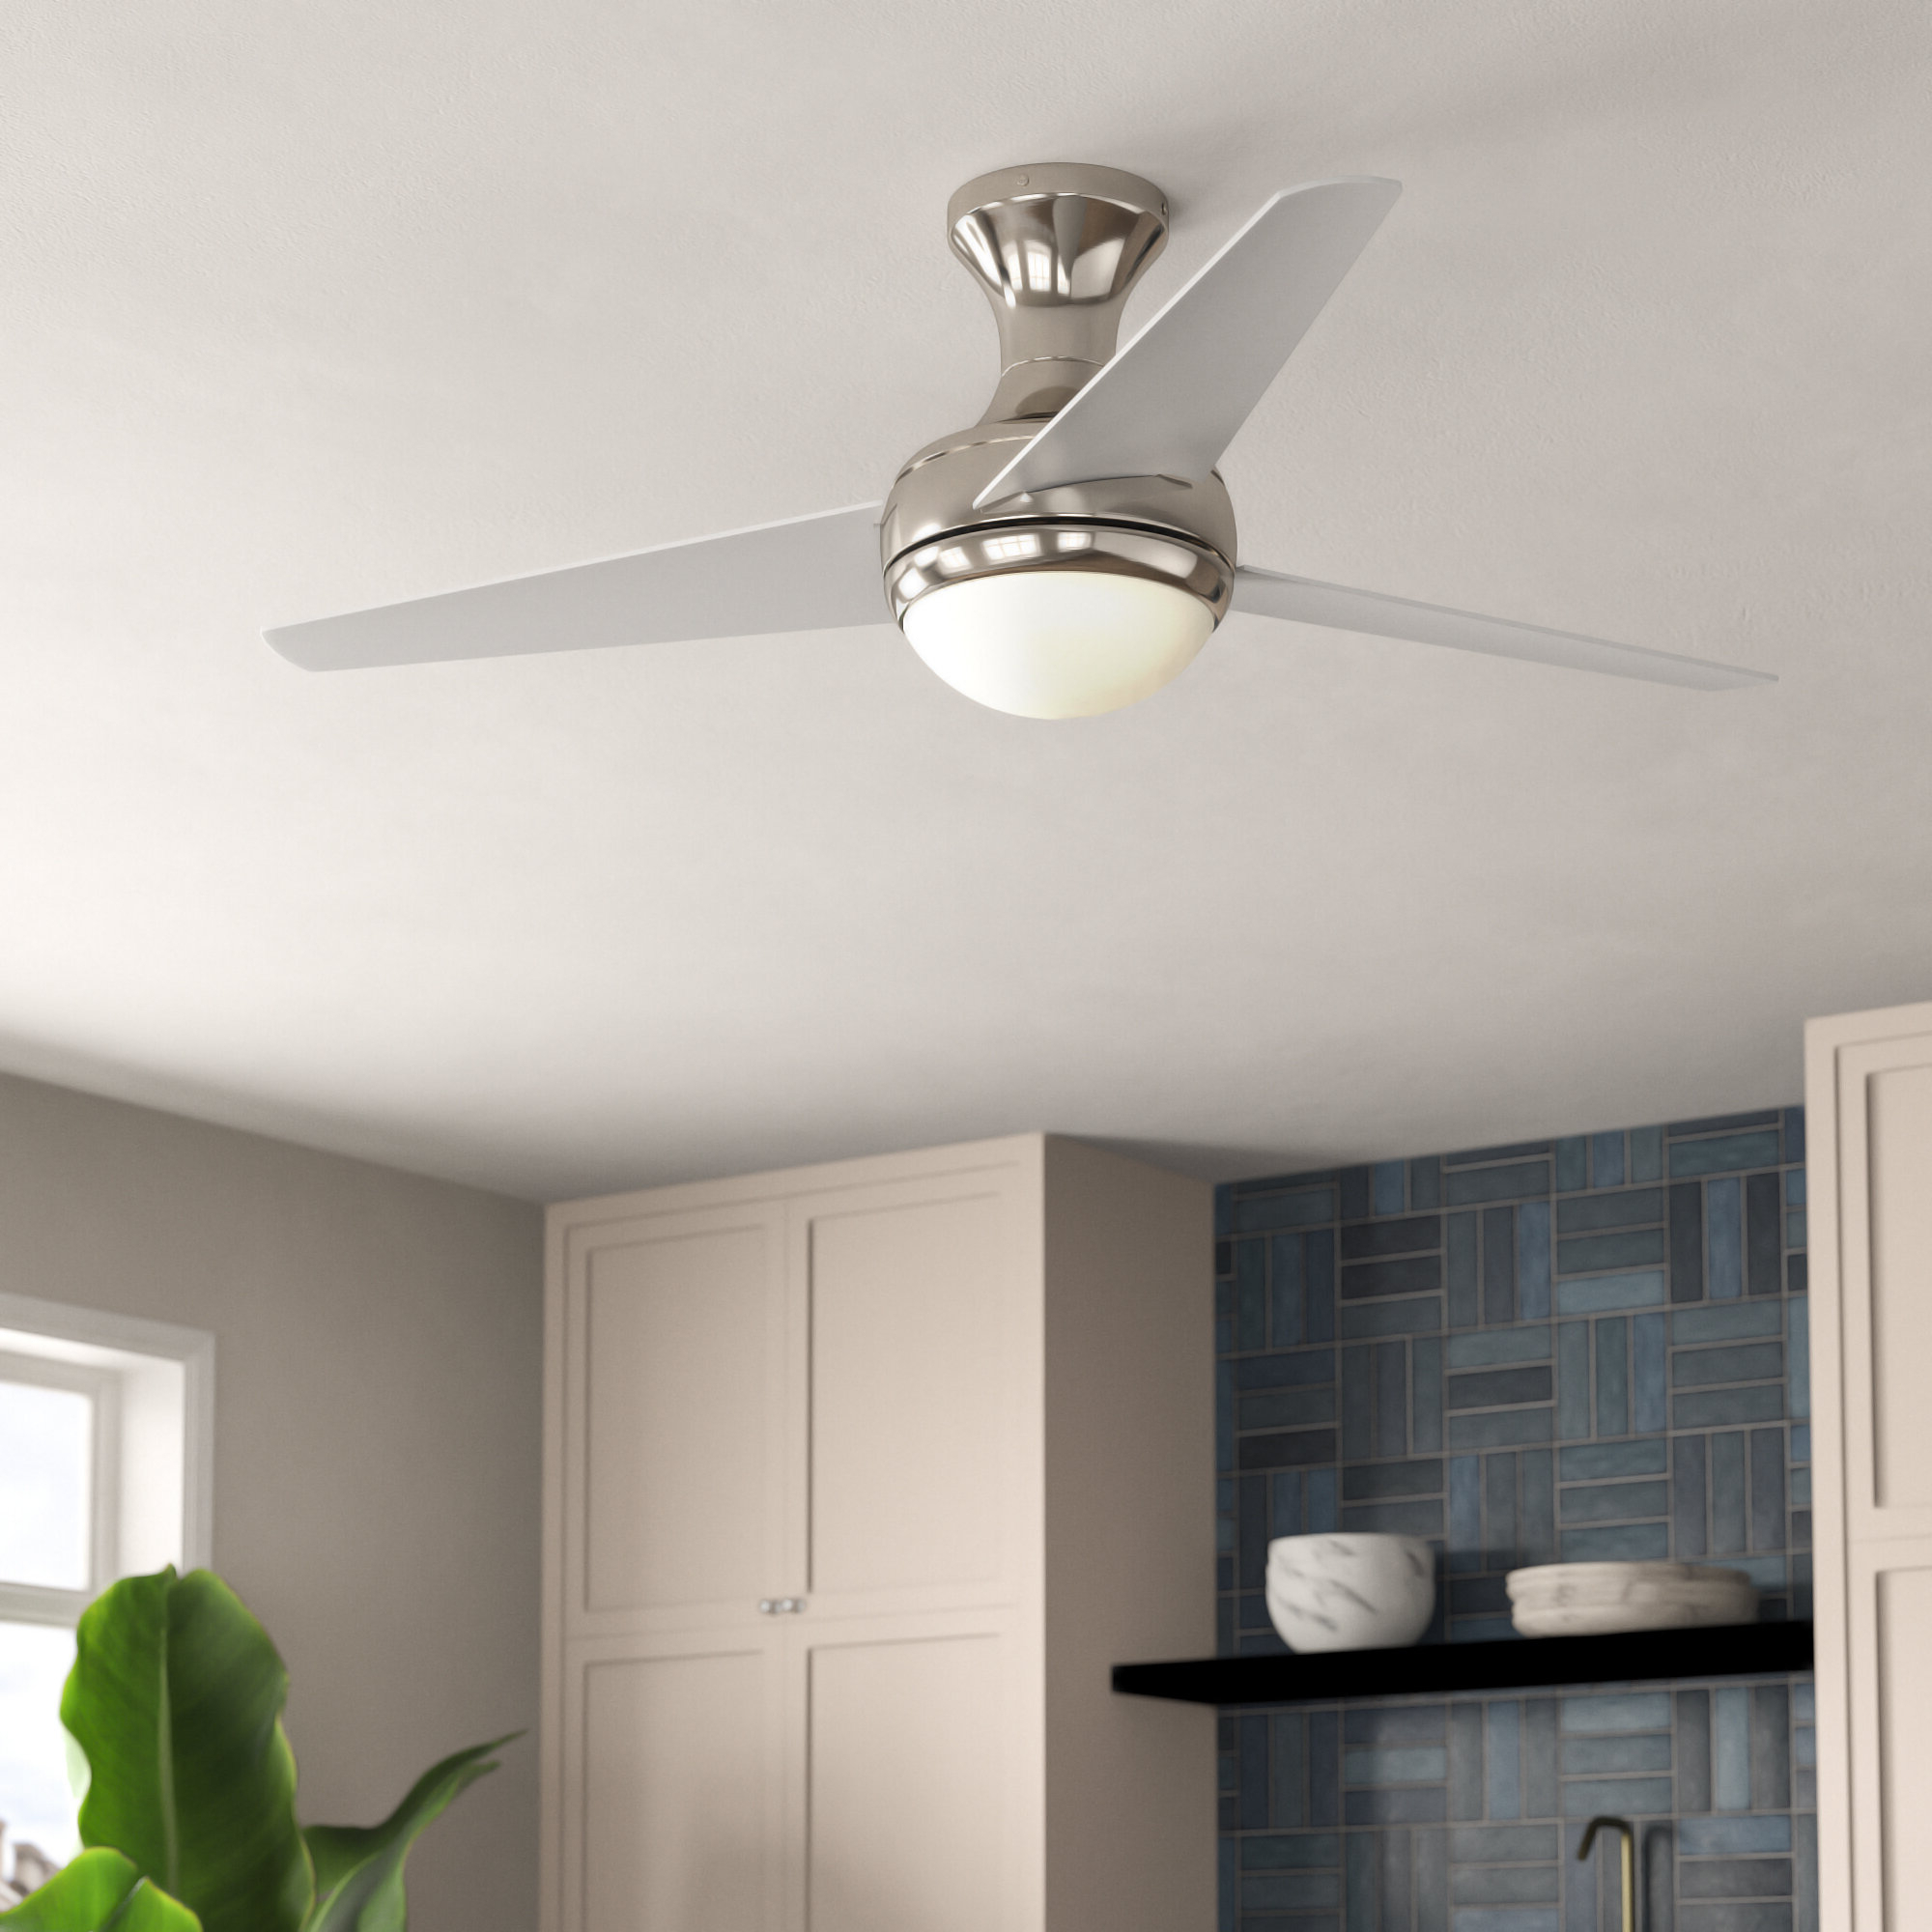 Corry 6 Blade Ceiling Fans Regarding Most Current Modern Mercury Row Ceiling Fans (View 7 of 20)